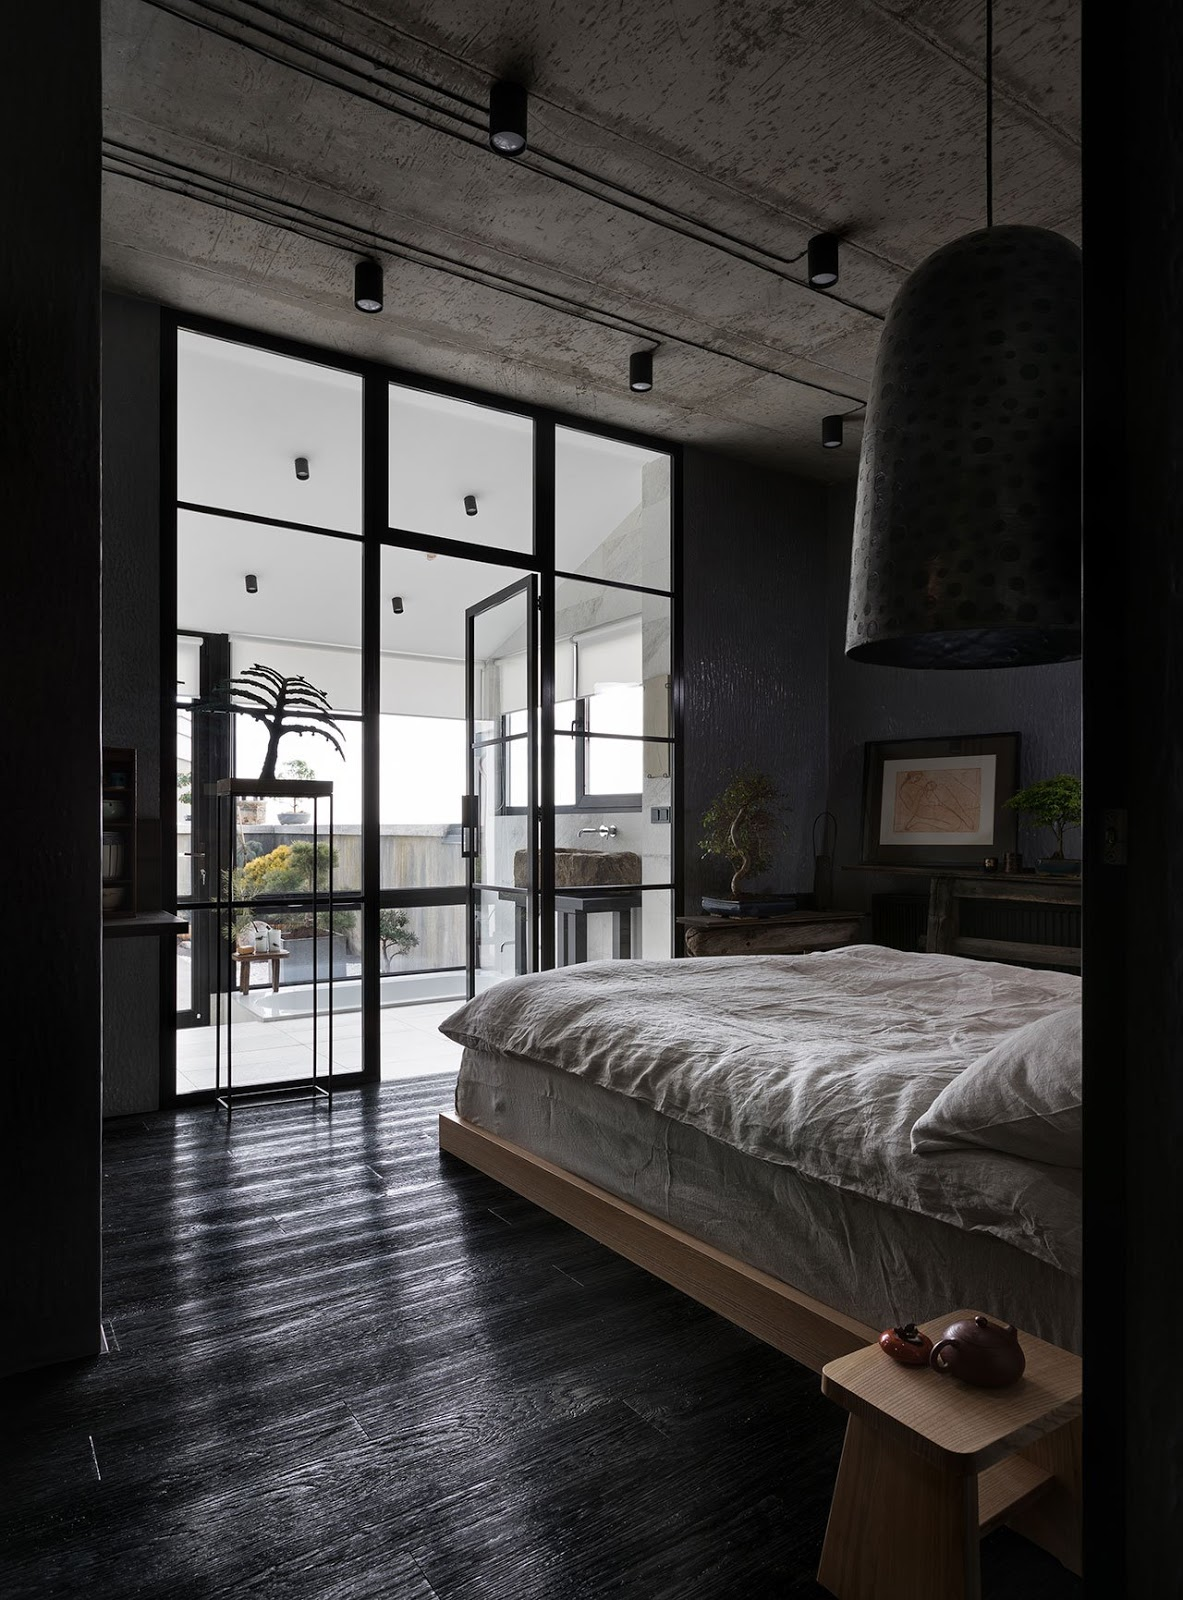 loveisspeed imperfection is beautiful the wabi sabi apartment by sergey makhno in kiev. Black Bedroom Furniture Sets. Home Design Ideas